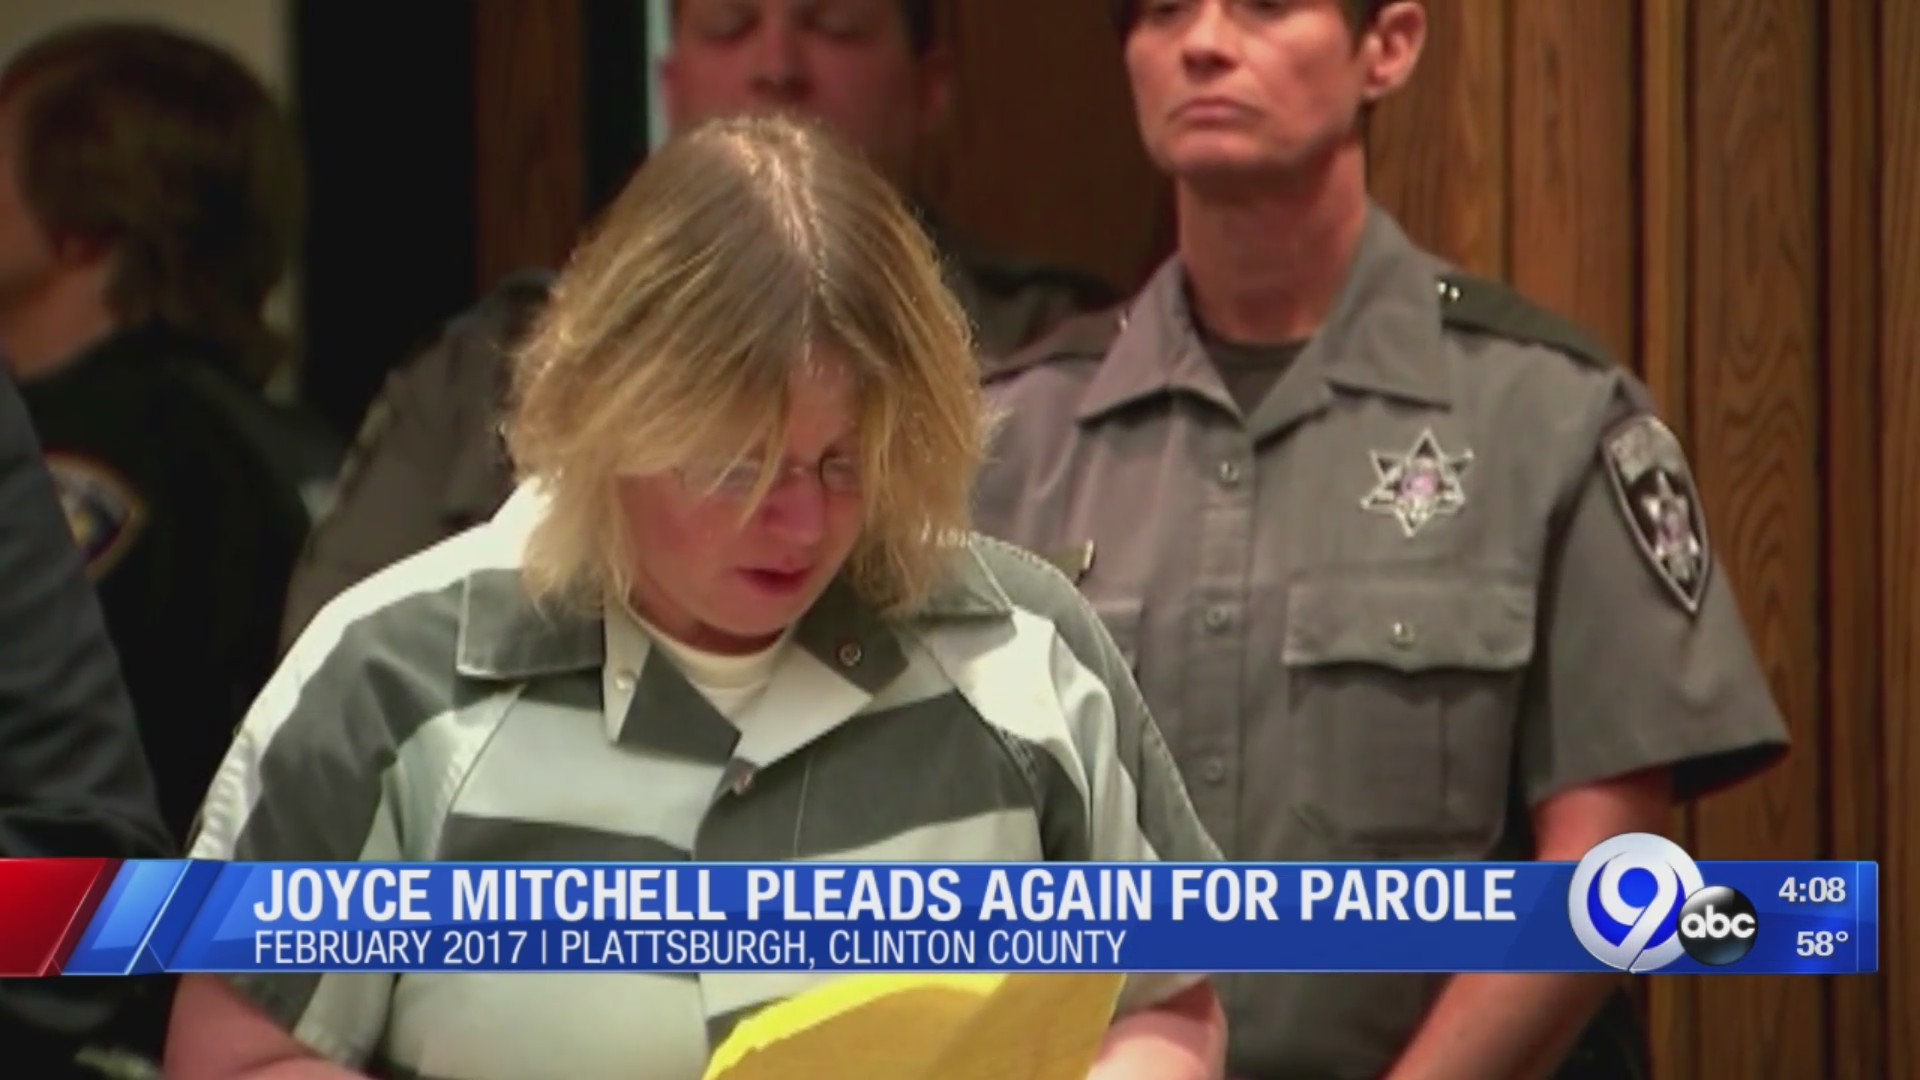 Joyce Mitchell up for parole next week